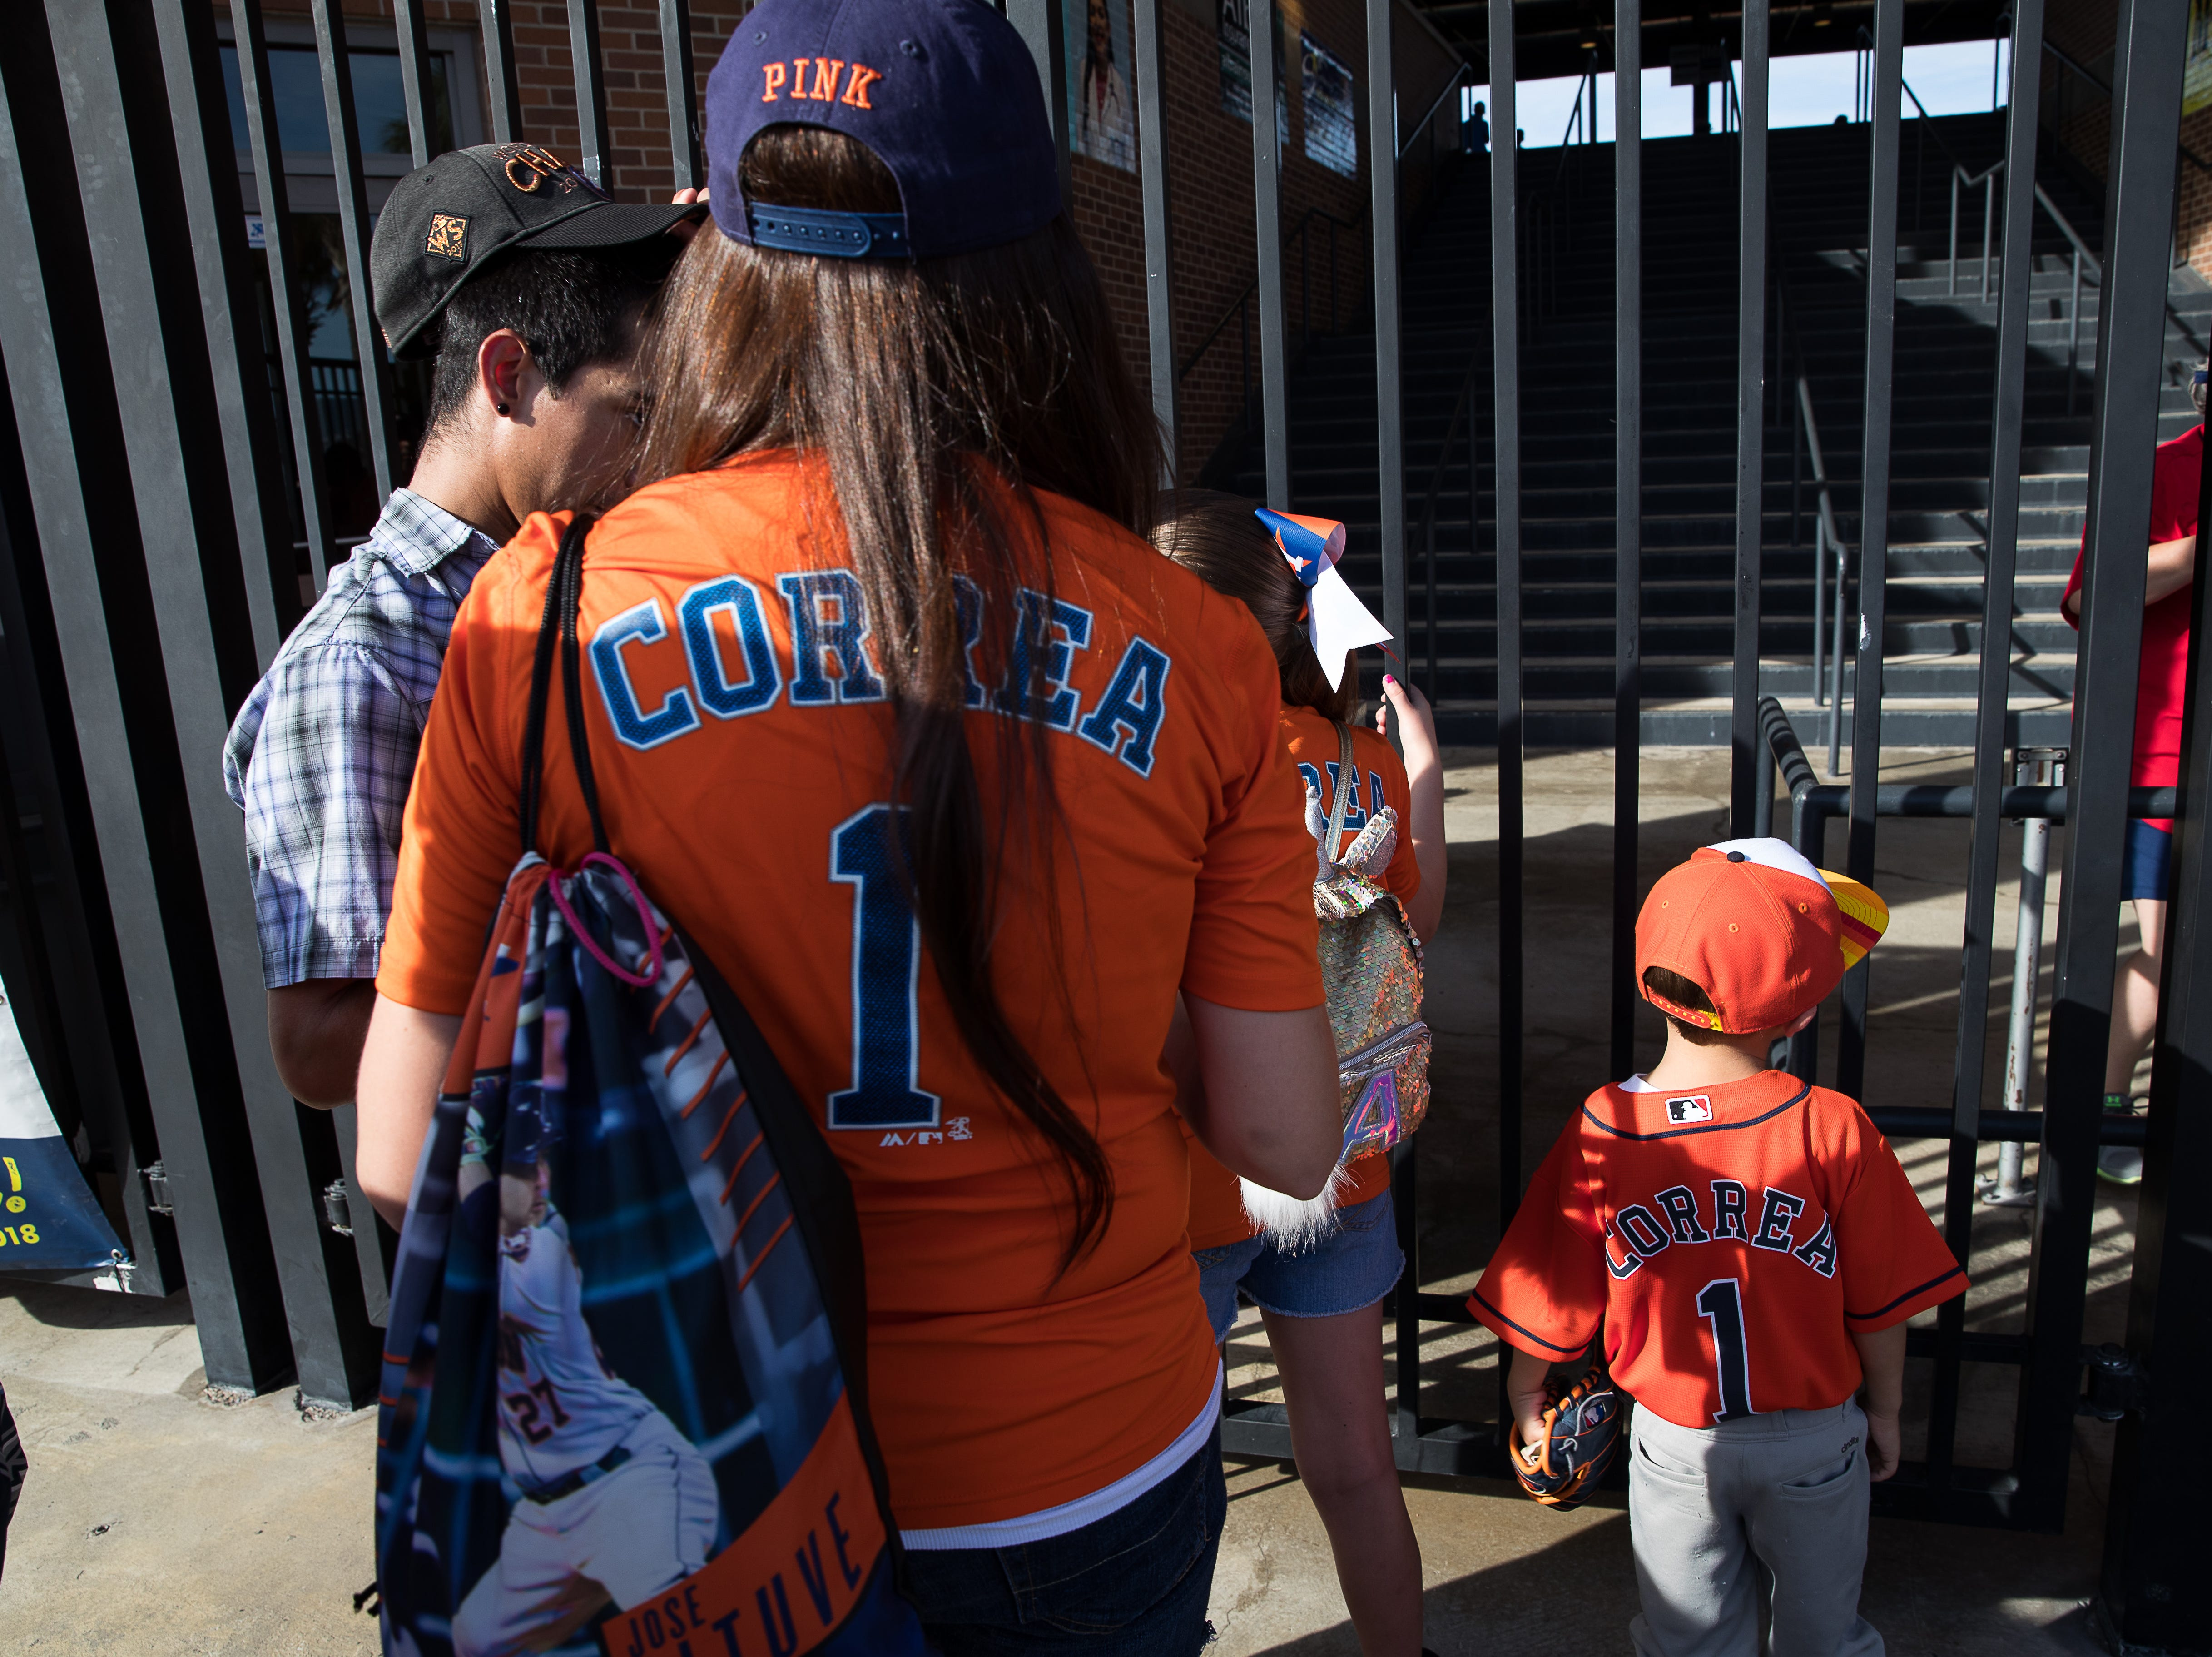 Fans in Carlos Correa Houston Astros jerseys wait outside Whataburger Field before a Hooks game where Correa is playing on a rehab assignment Tuesday, Aug. 7, 2018.